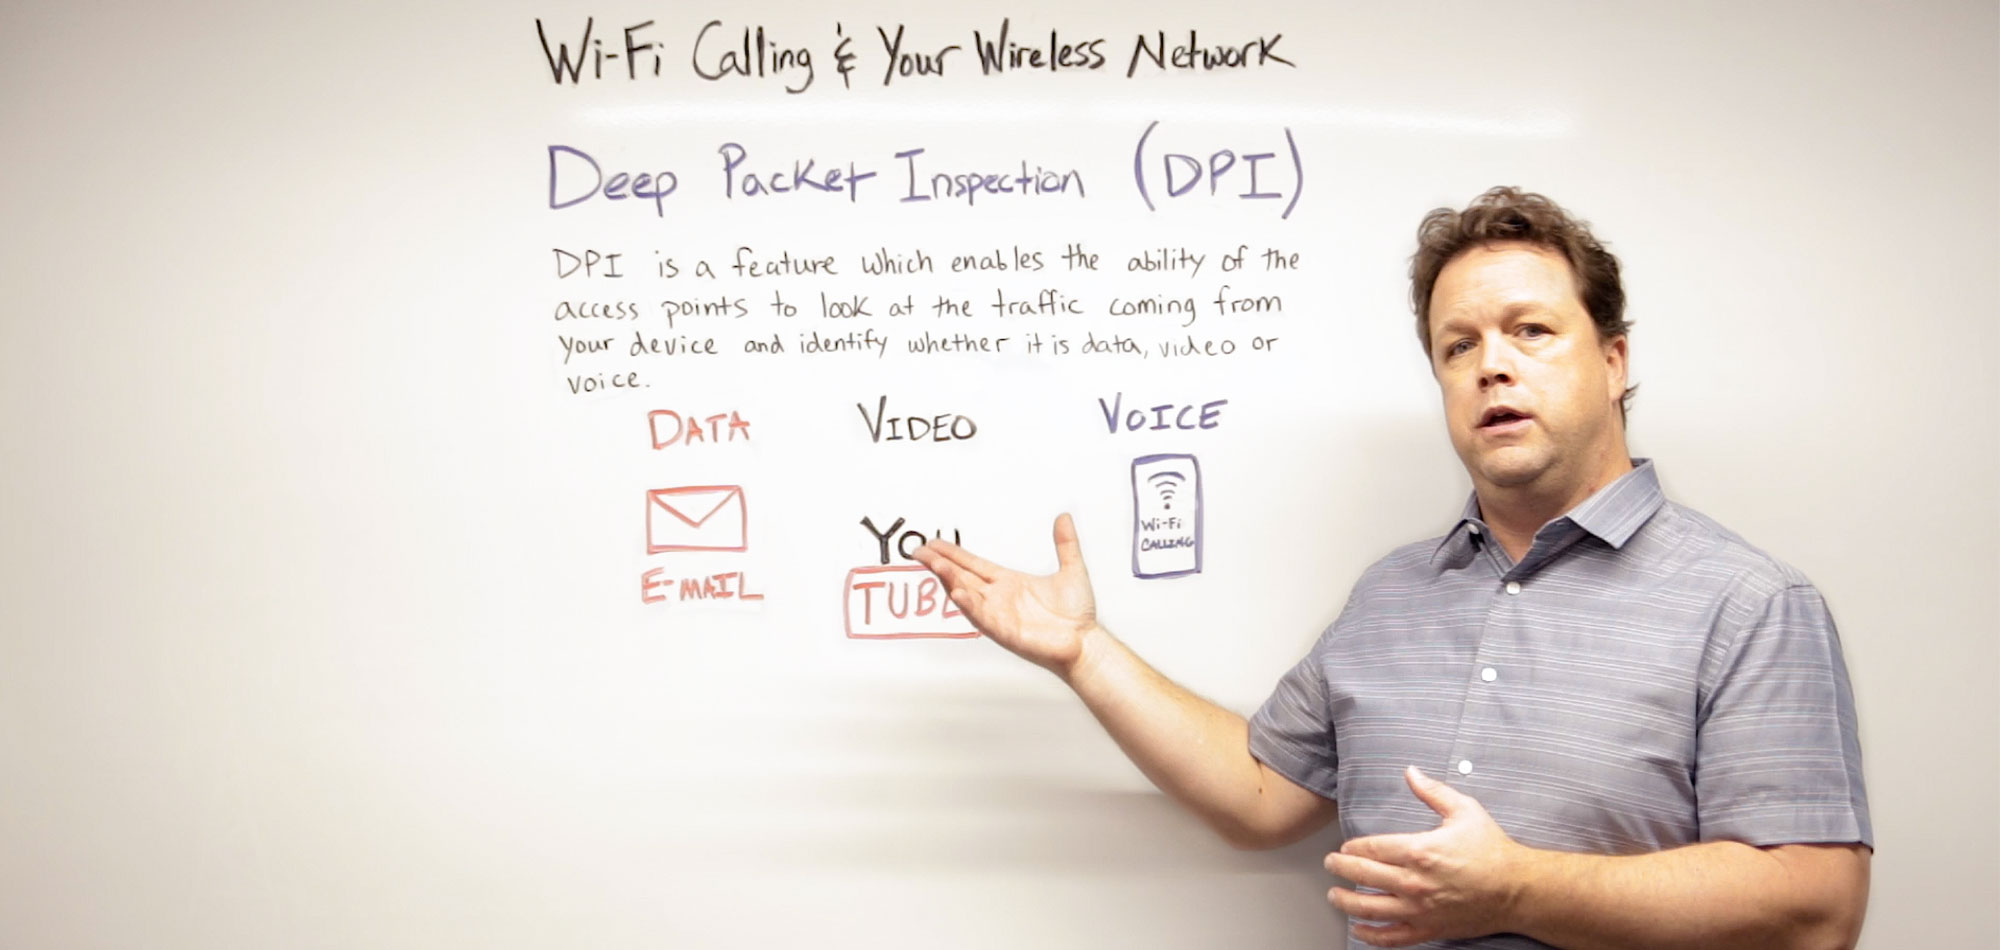 Whiteboard Wednesday: Wi-Fi Calling & Your Wireless Network [Part 2]